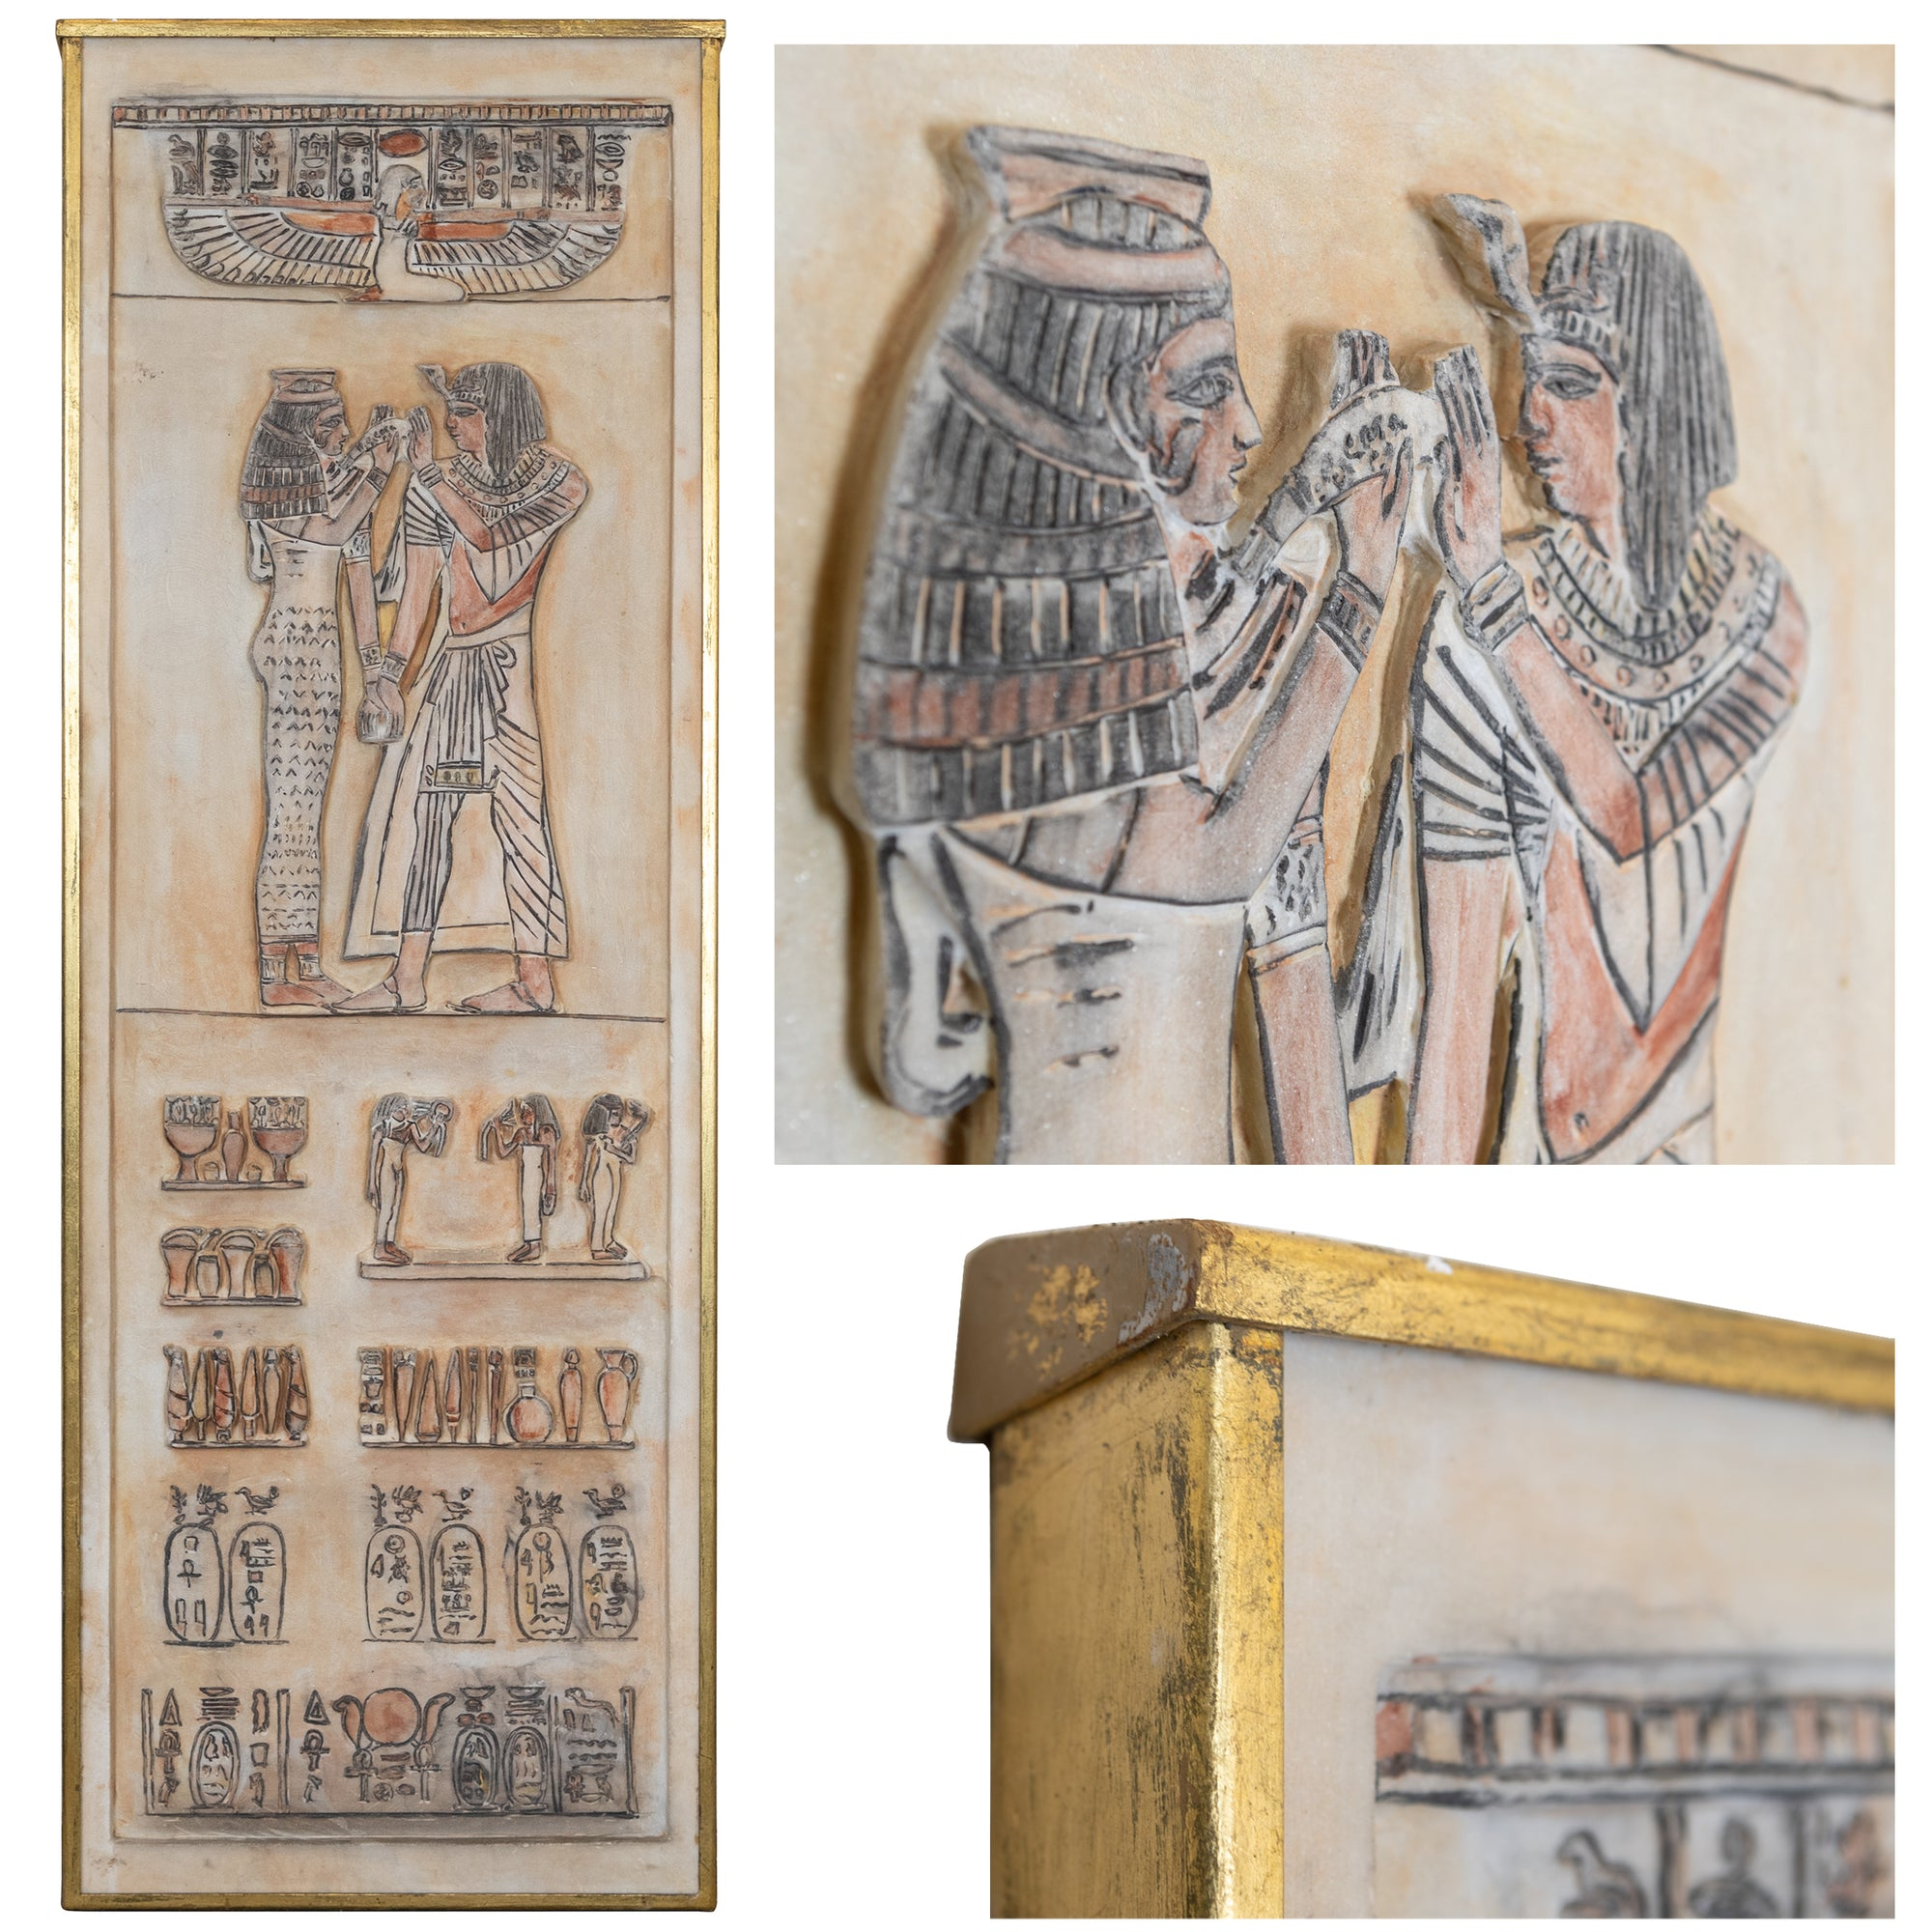 Stone Panel with Carved Ancient Egyptian Hieroglyphics